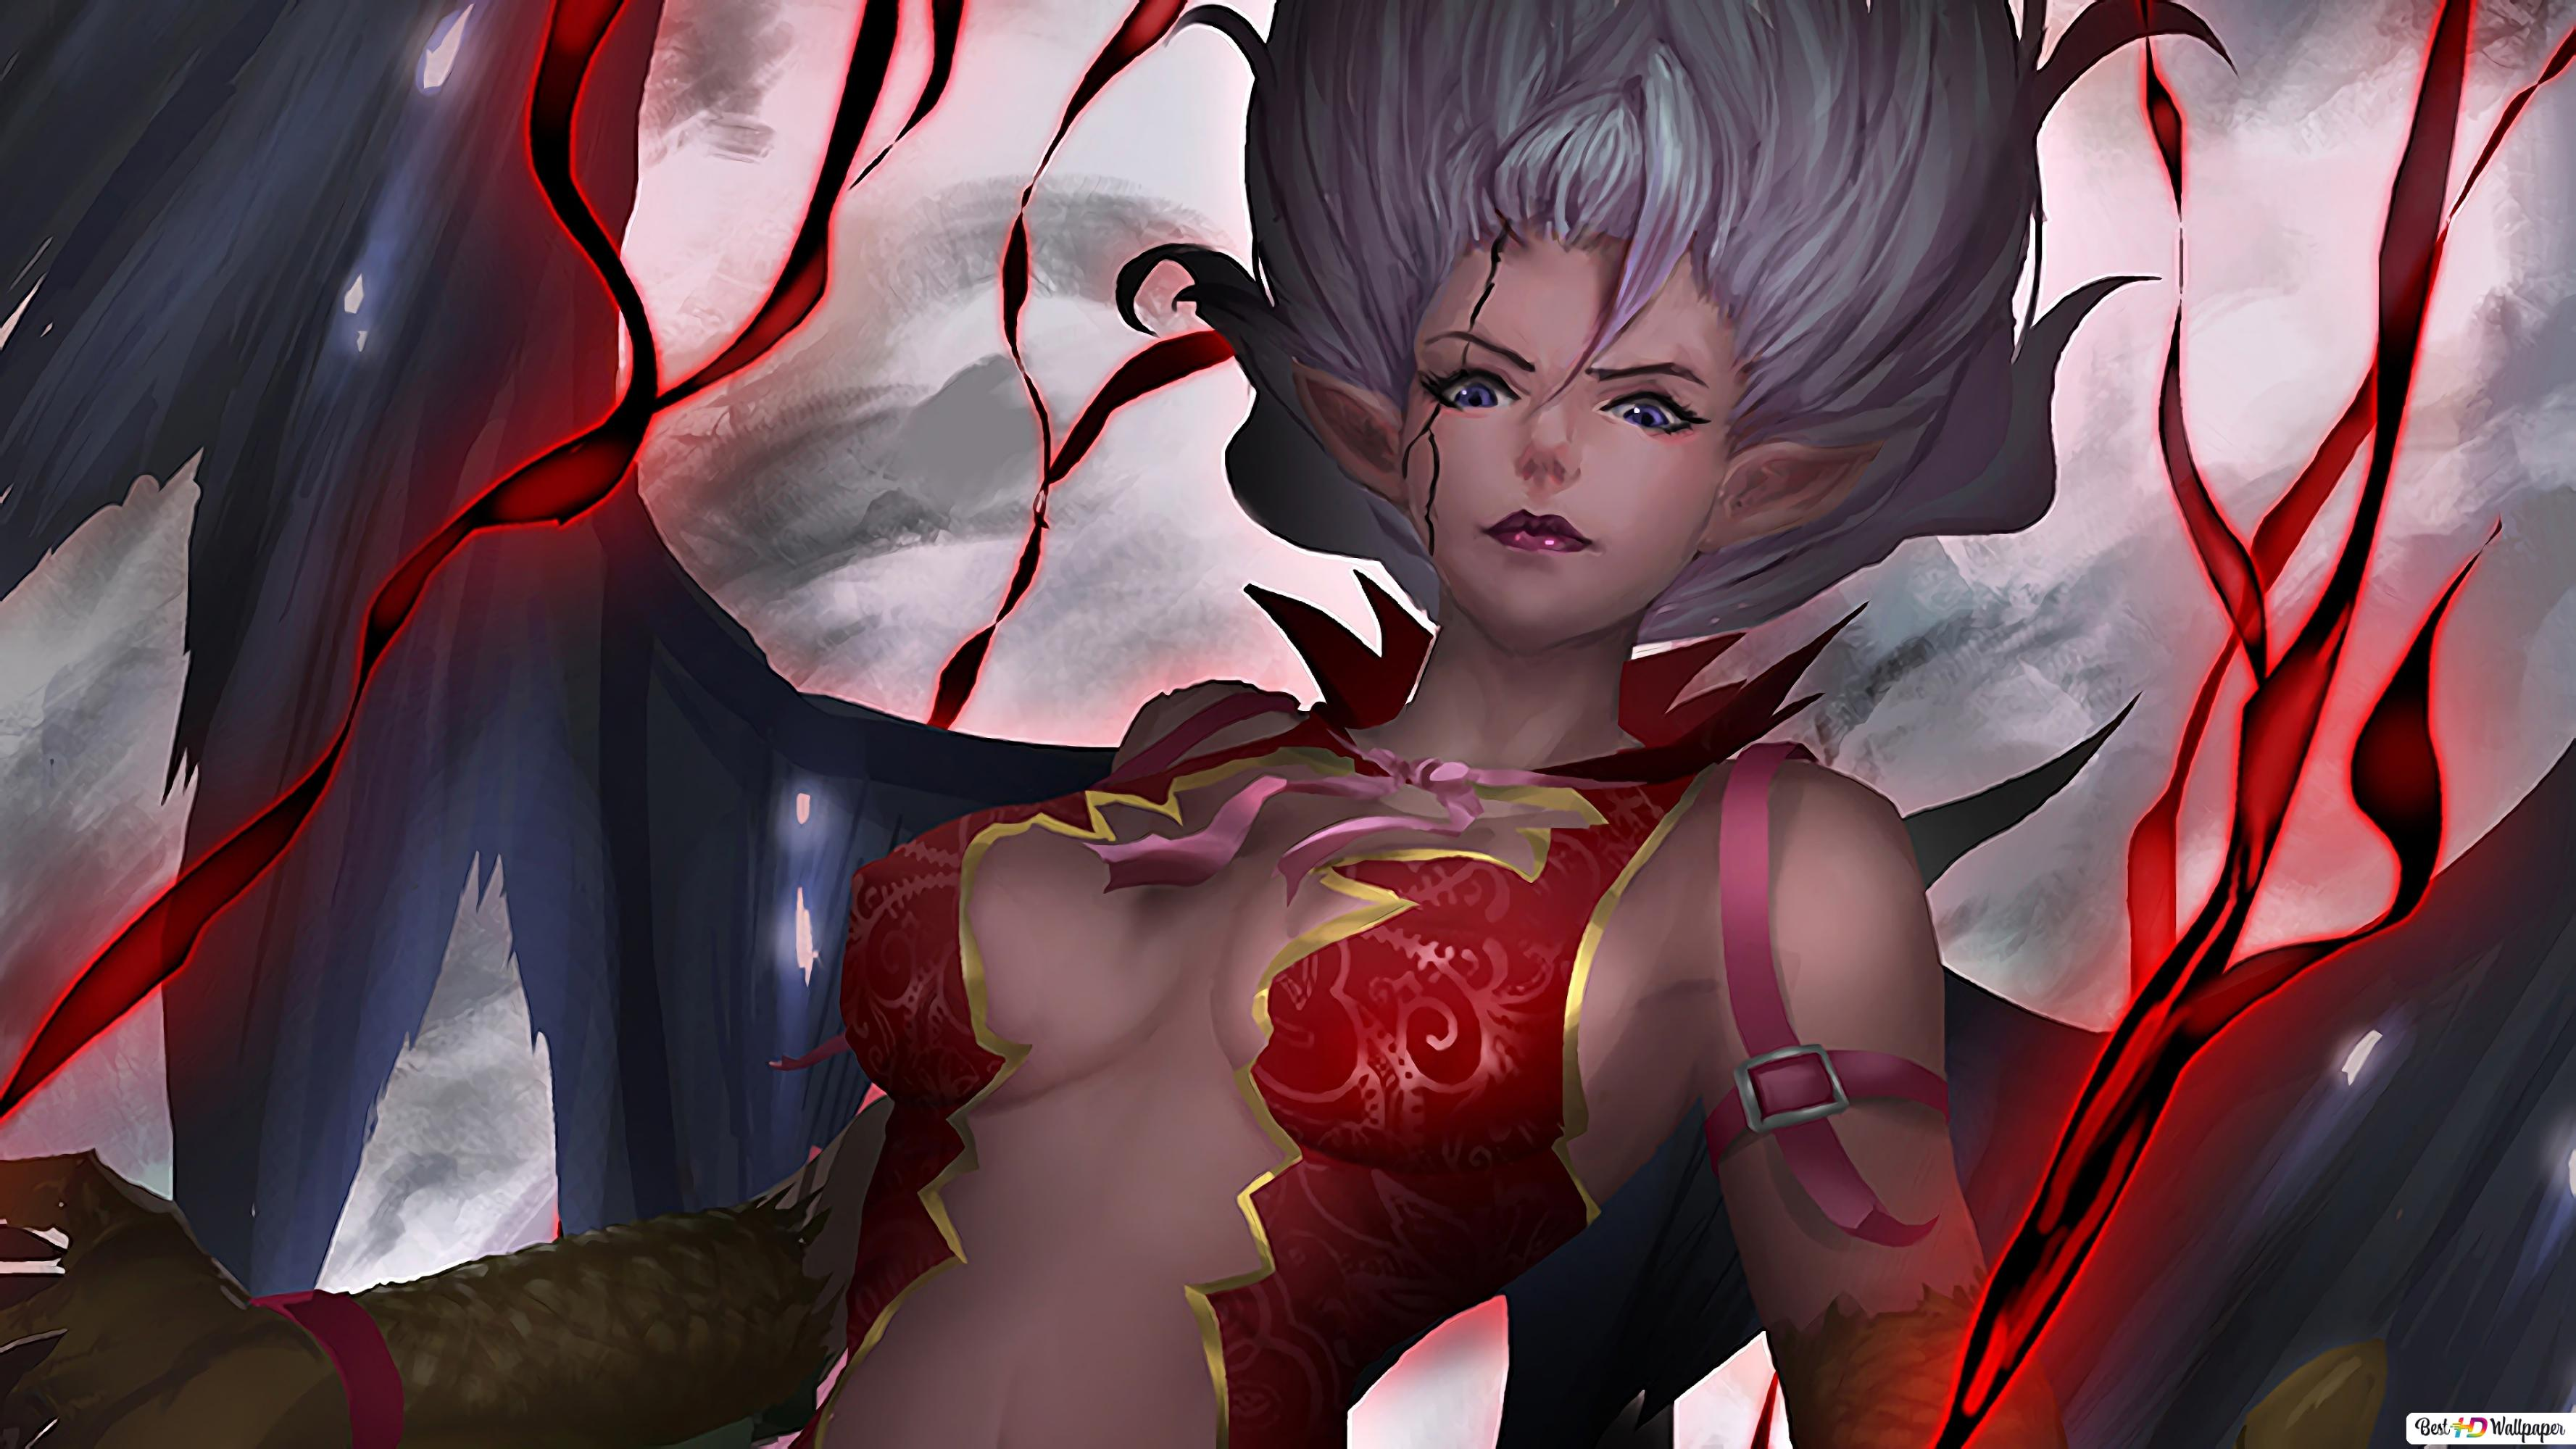 Fairy Tail Mirajane Strauss Satan Soul Hd Wallpaper Download We have 70+ amazing background pictures carefully picked by our community. fairy tail mirajane strauss satan